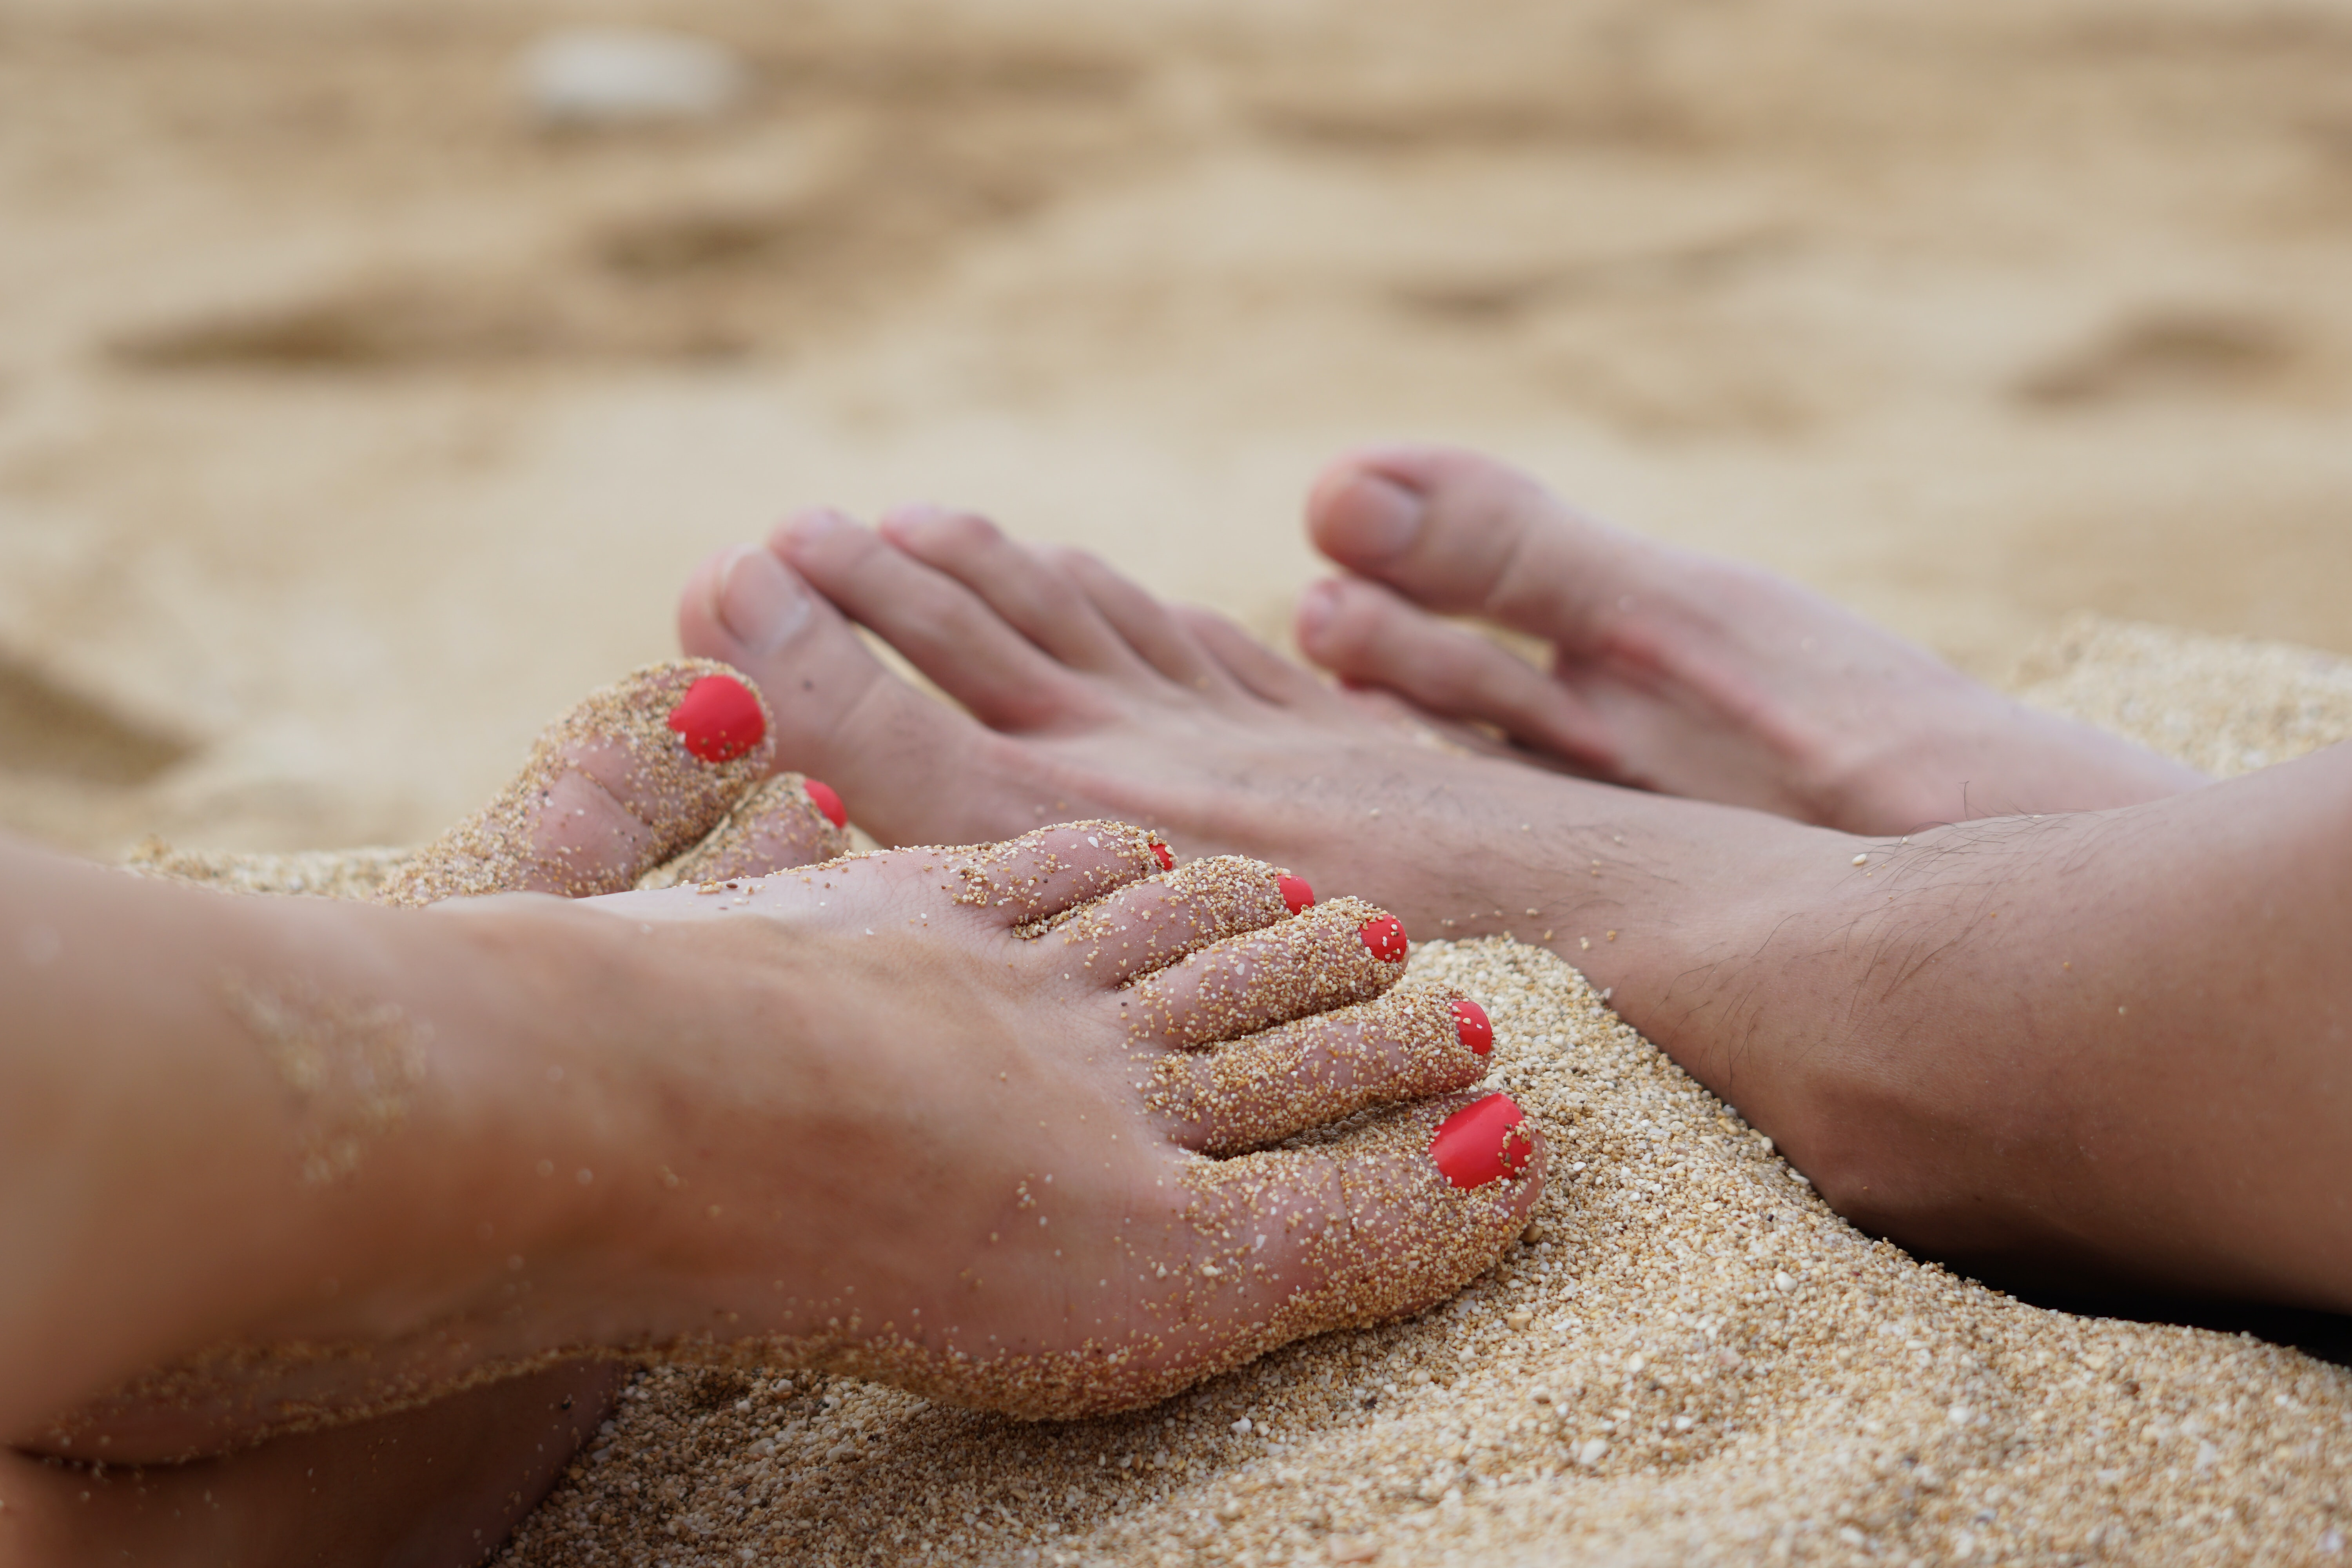 two people's feet in sand